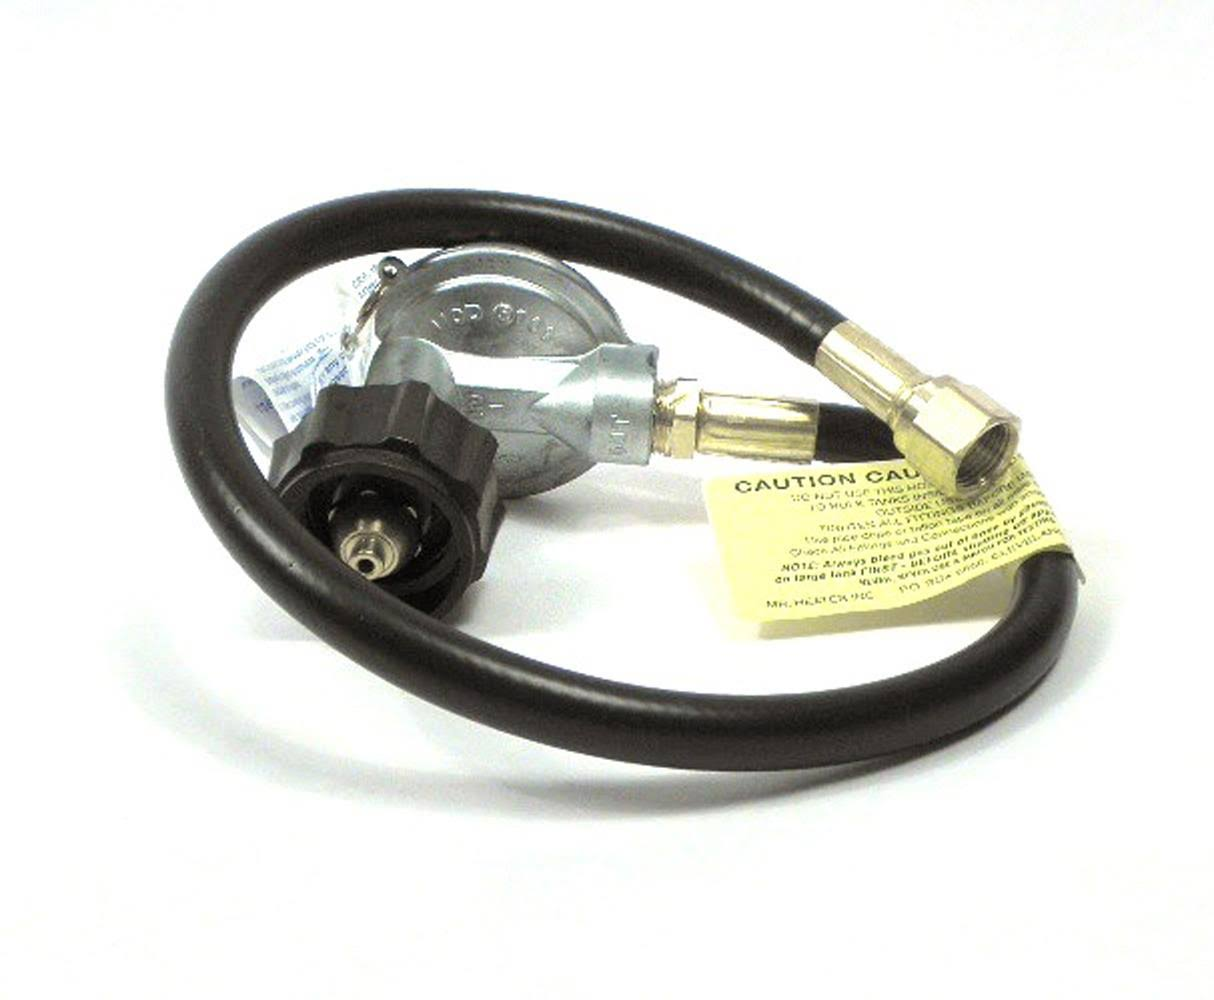 Mr. Heater Replacement Propane BBQ Hose and Regulator - 22""